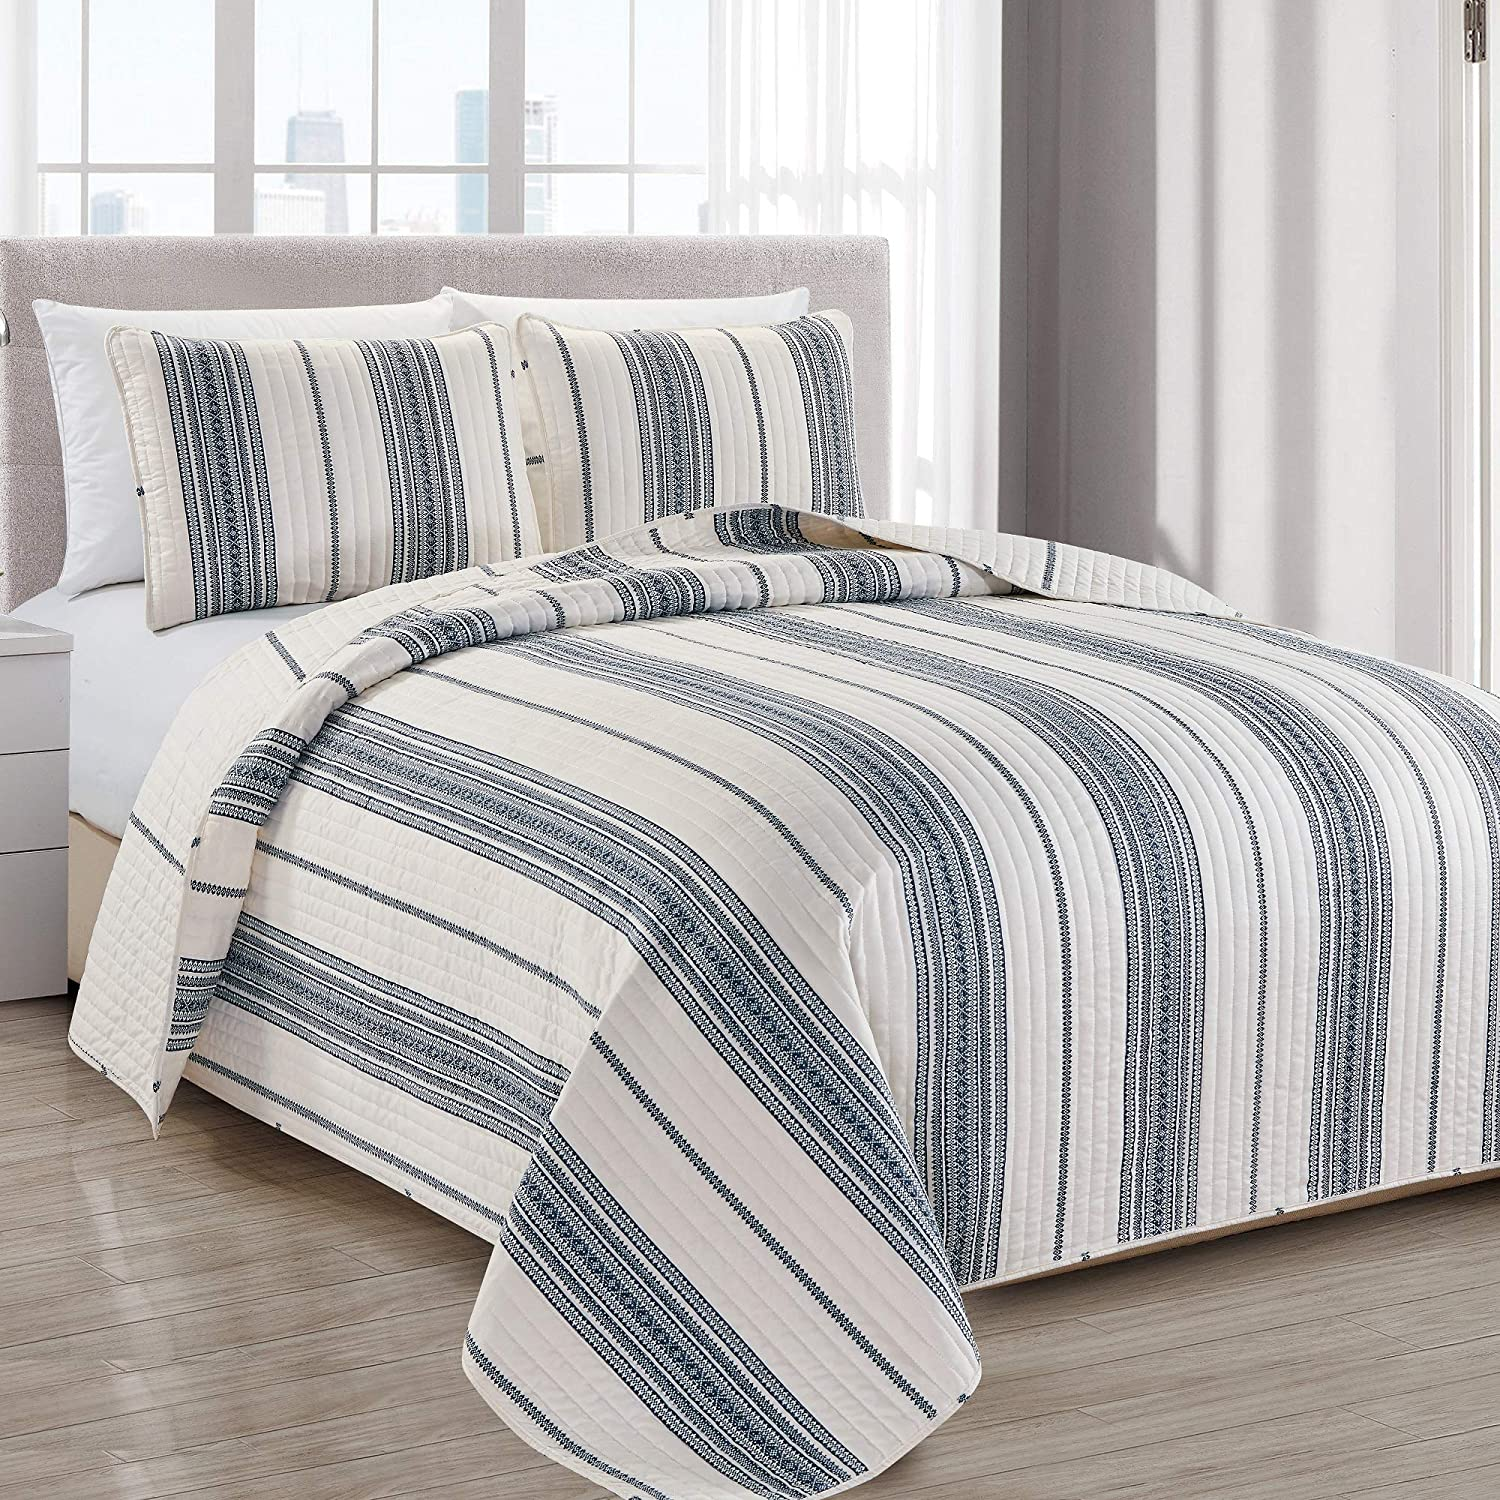 Great Bay Home Modern Bedspread Twin Size Quilt with 1 Sham. Modern 2-Piece Reversible All Season Quilt Set. Navy and White Quilt Coverlet Bed Set. Wesley Collection.